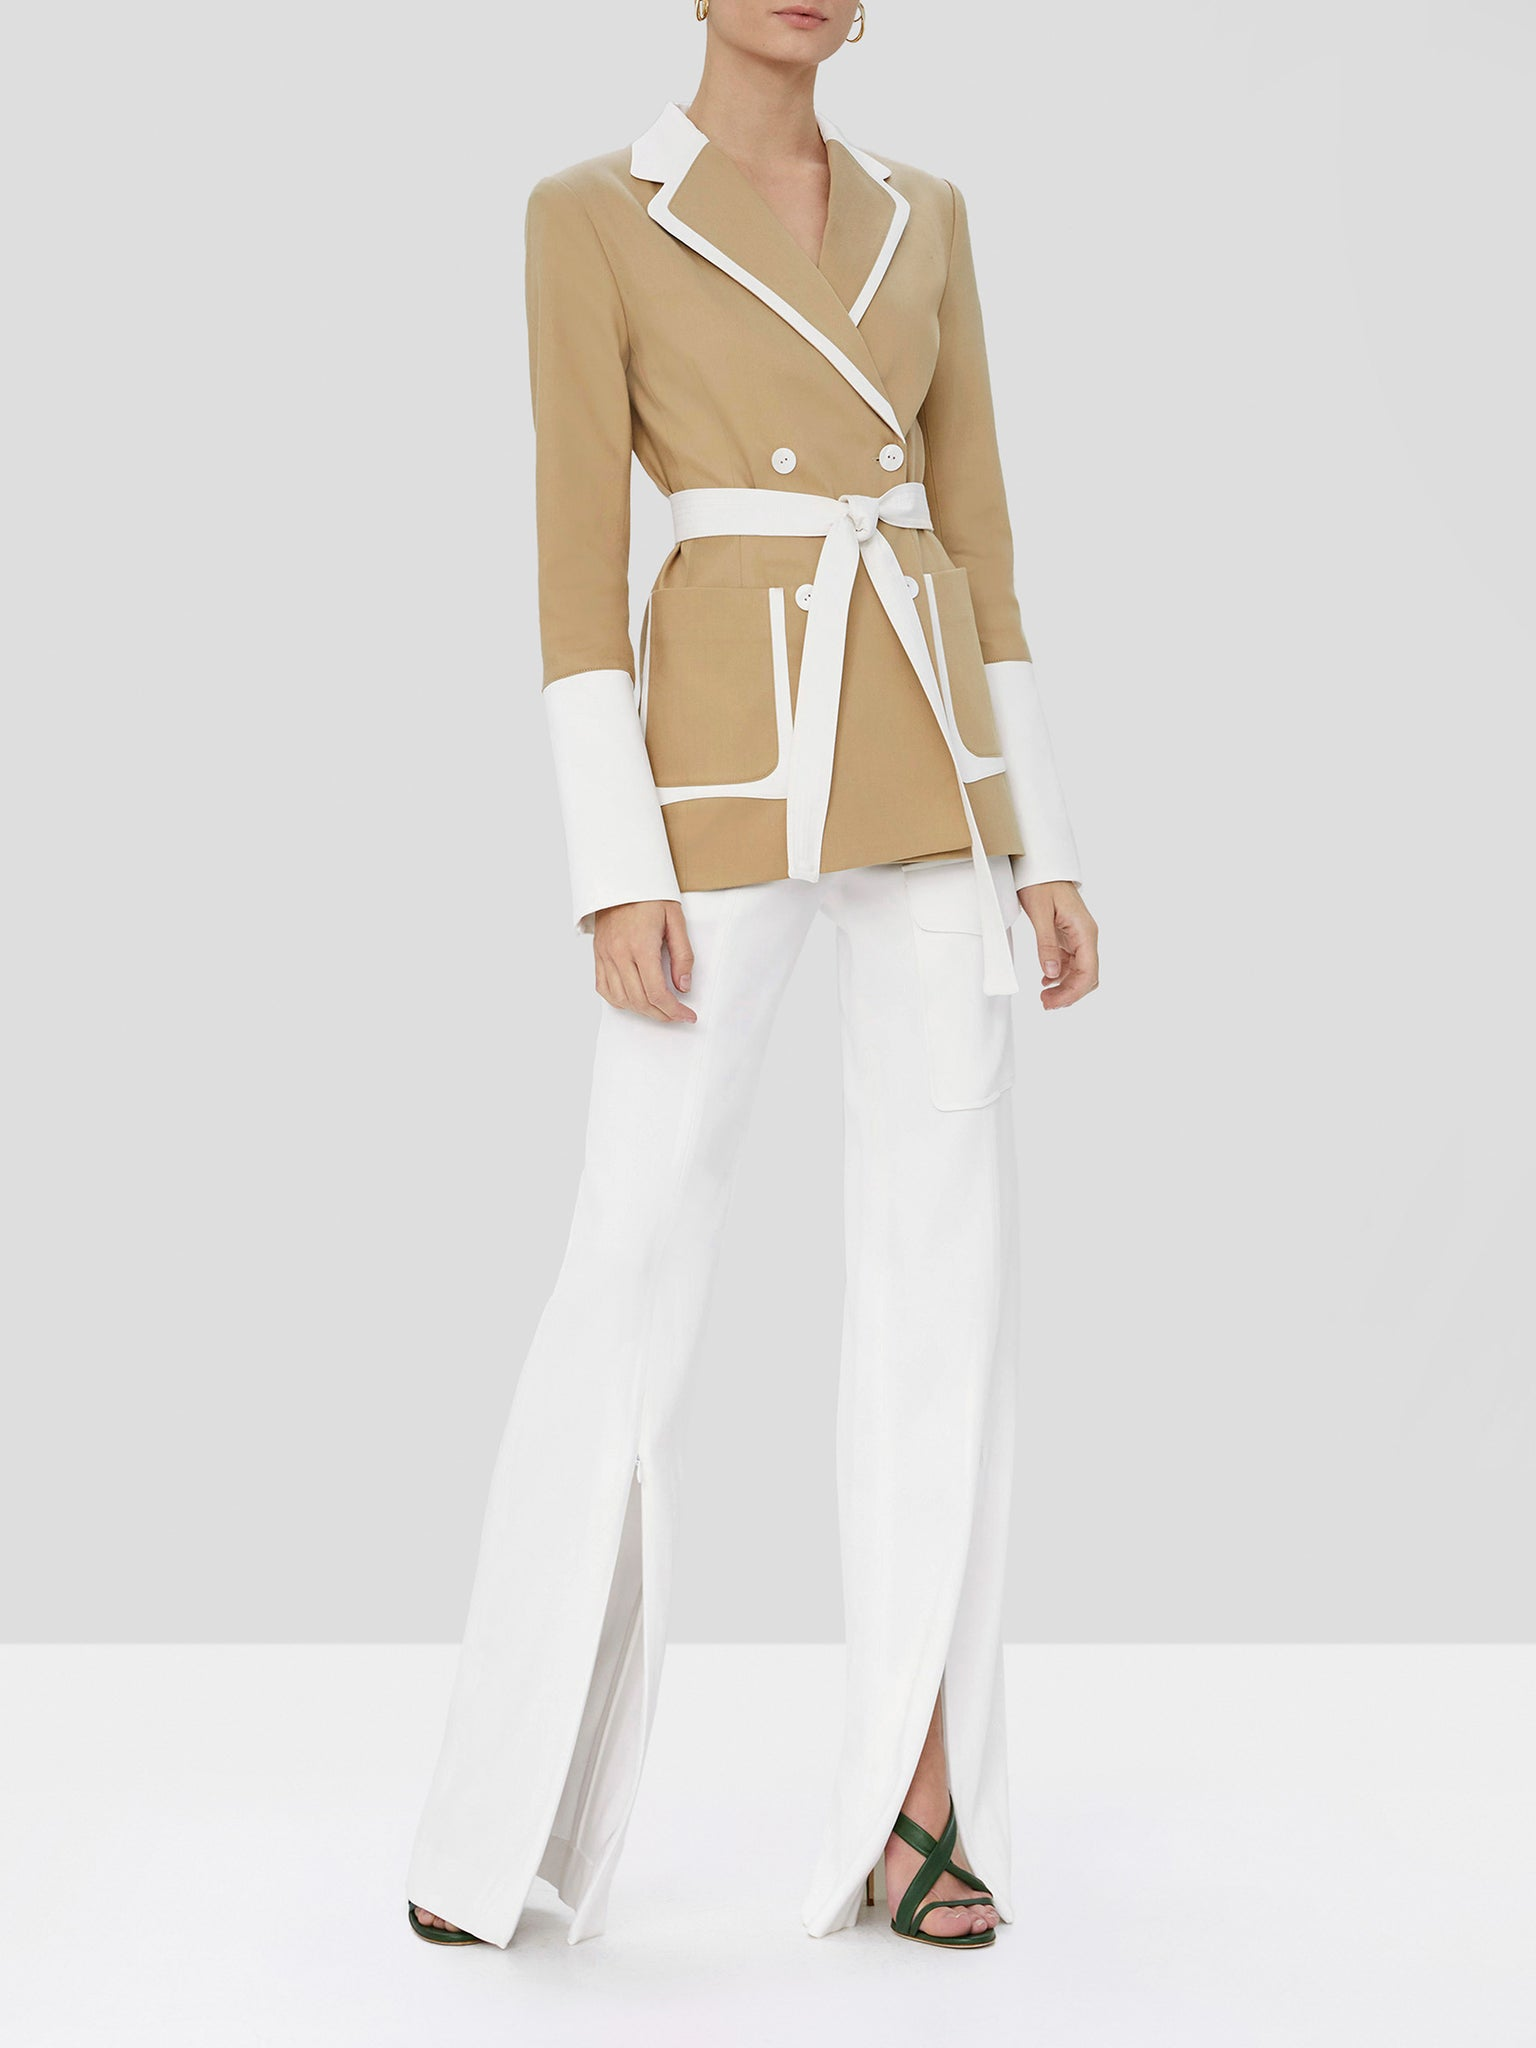 The Alexis Baccio double breasted jacket in tan and white